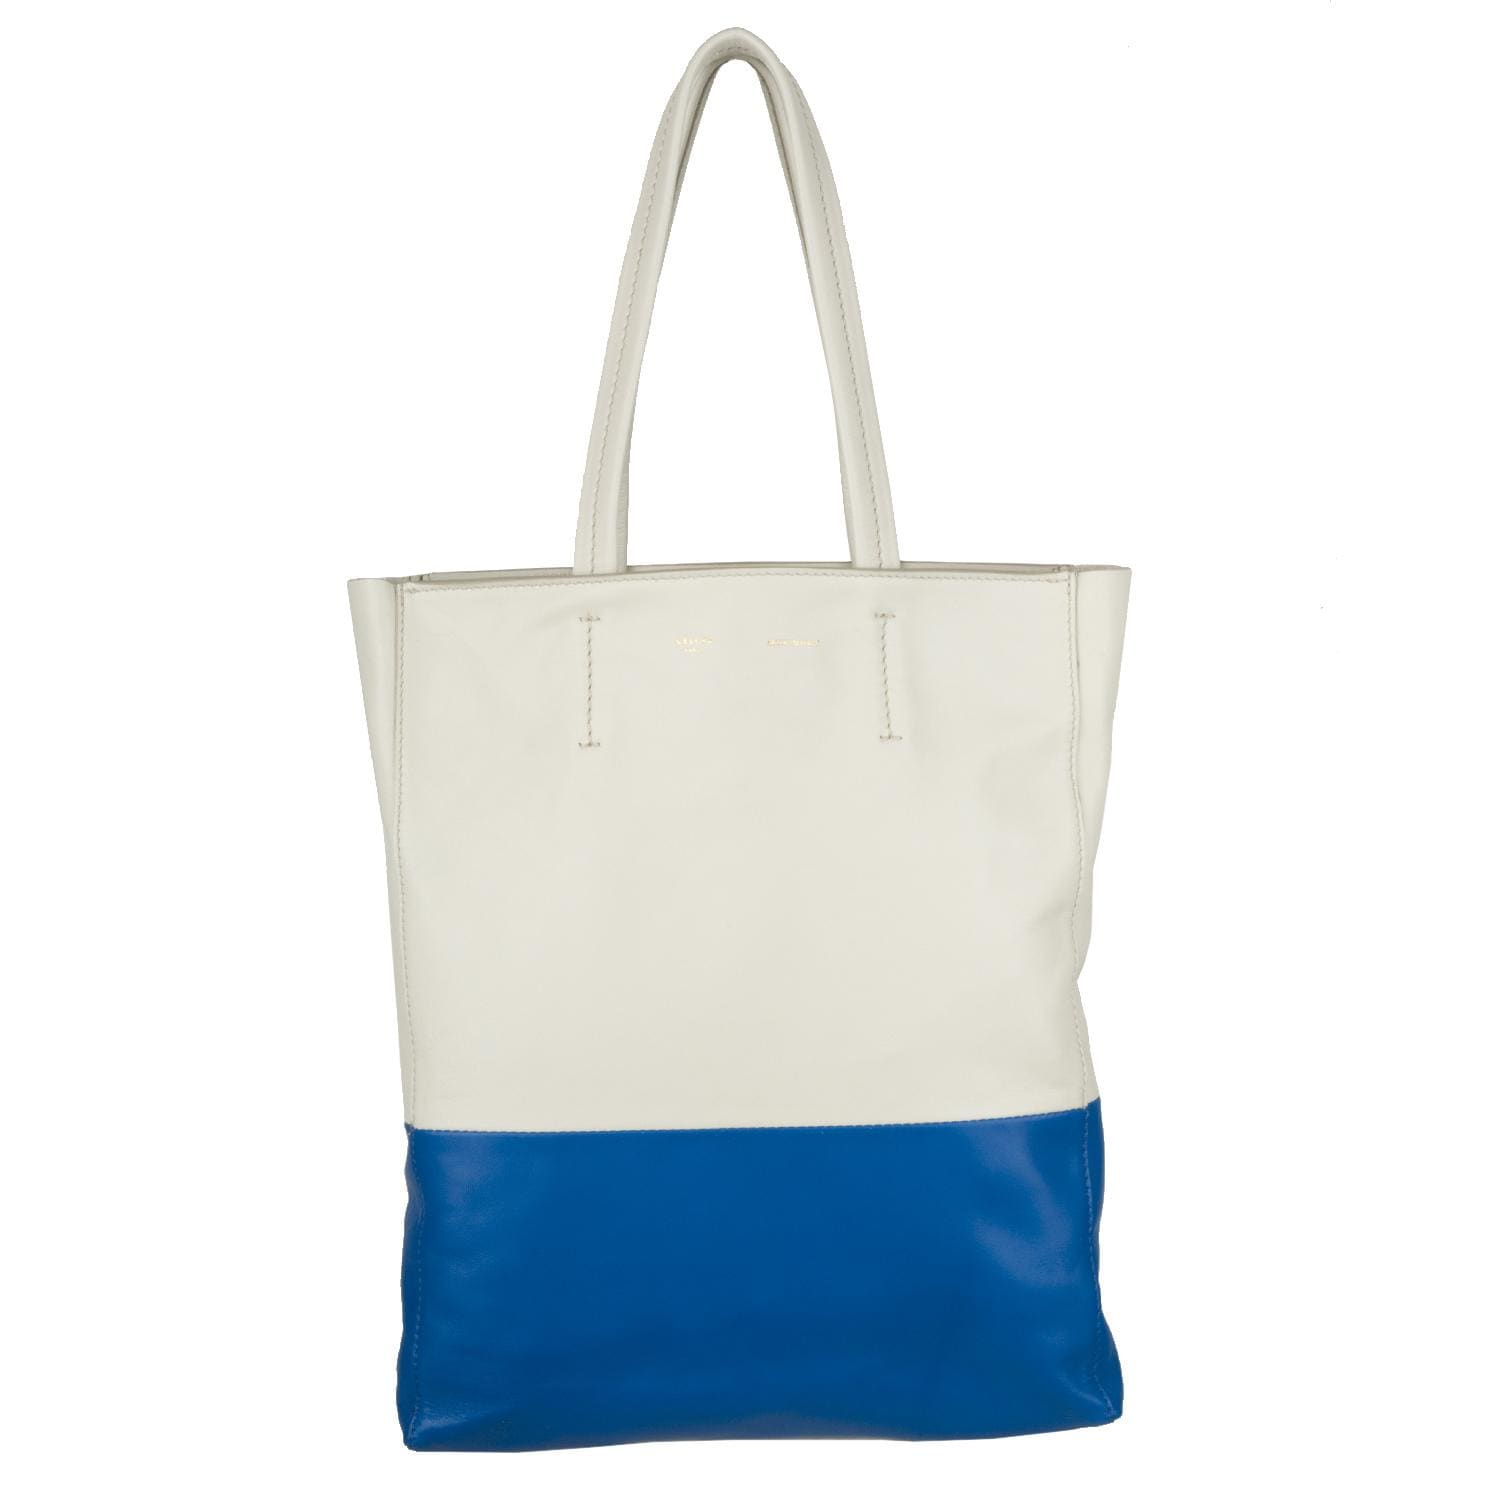 Celine \u0026#39;Bi-Cabas\u0026#39; Small Colorblock Leather Tote Bag - 13666138 ...